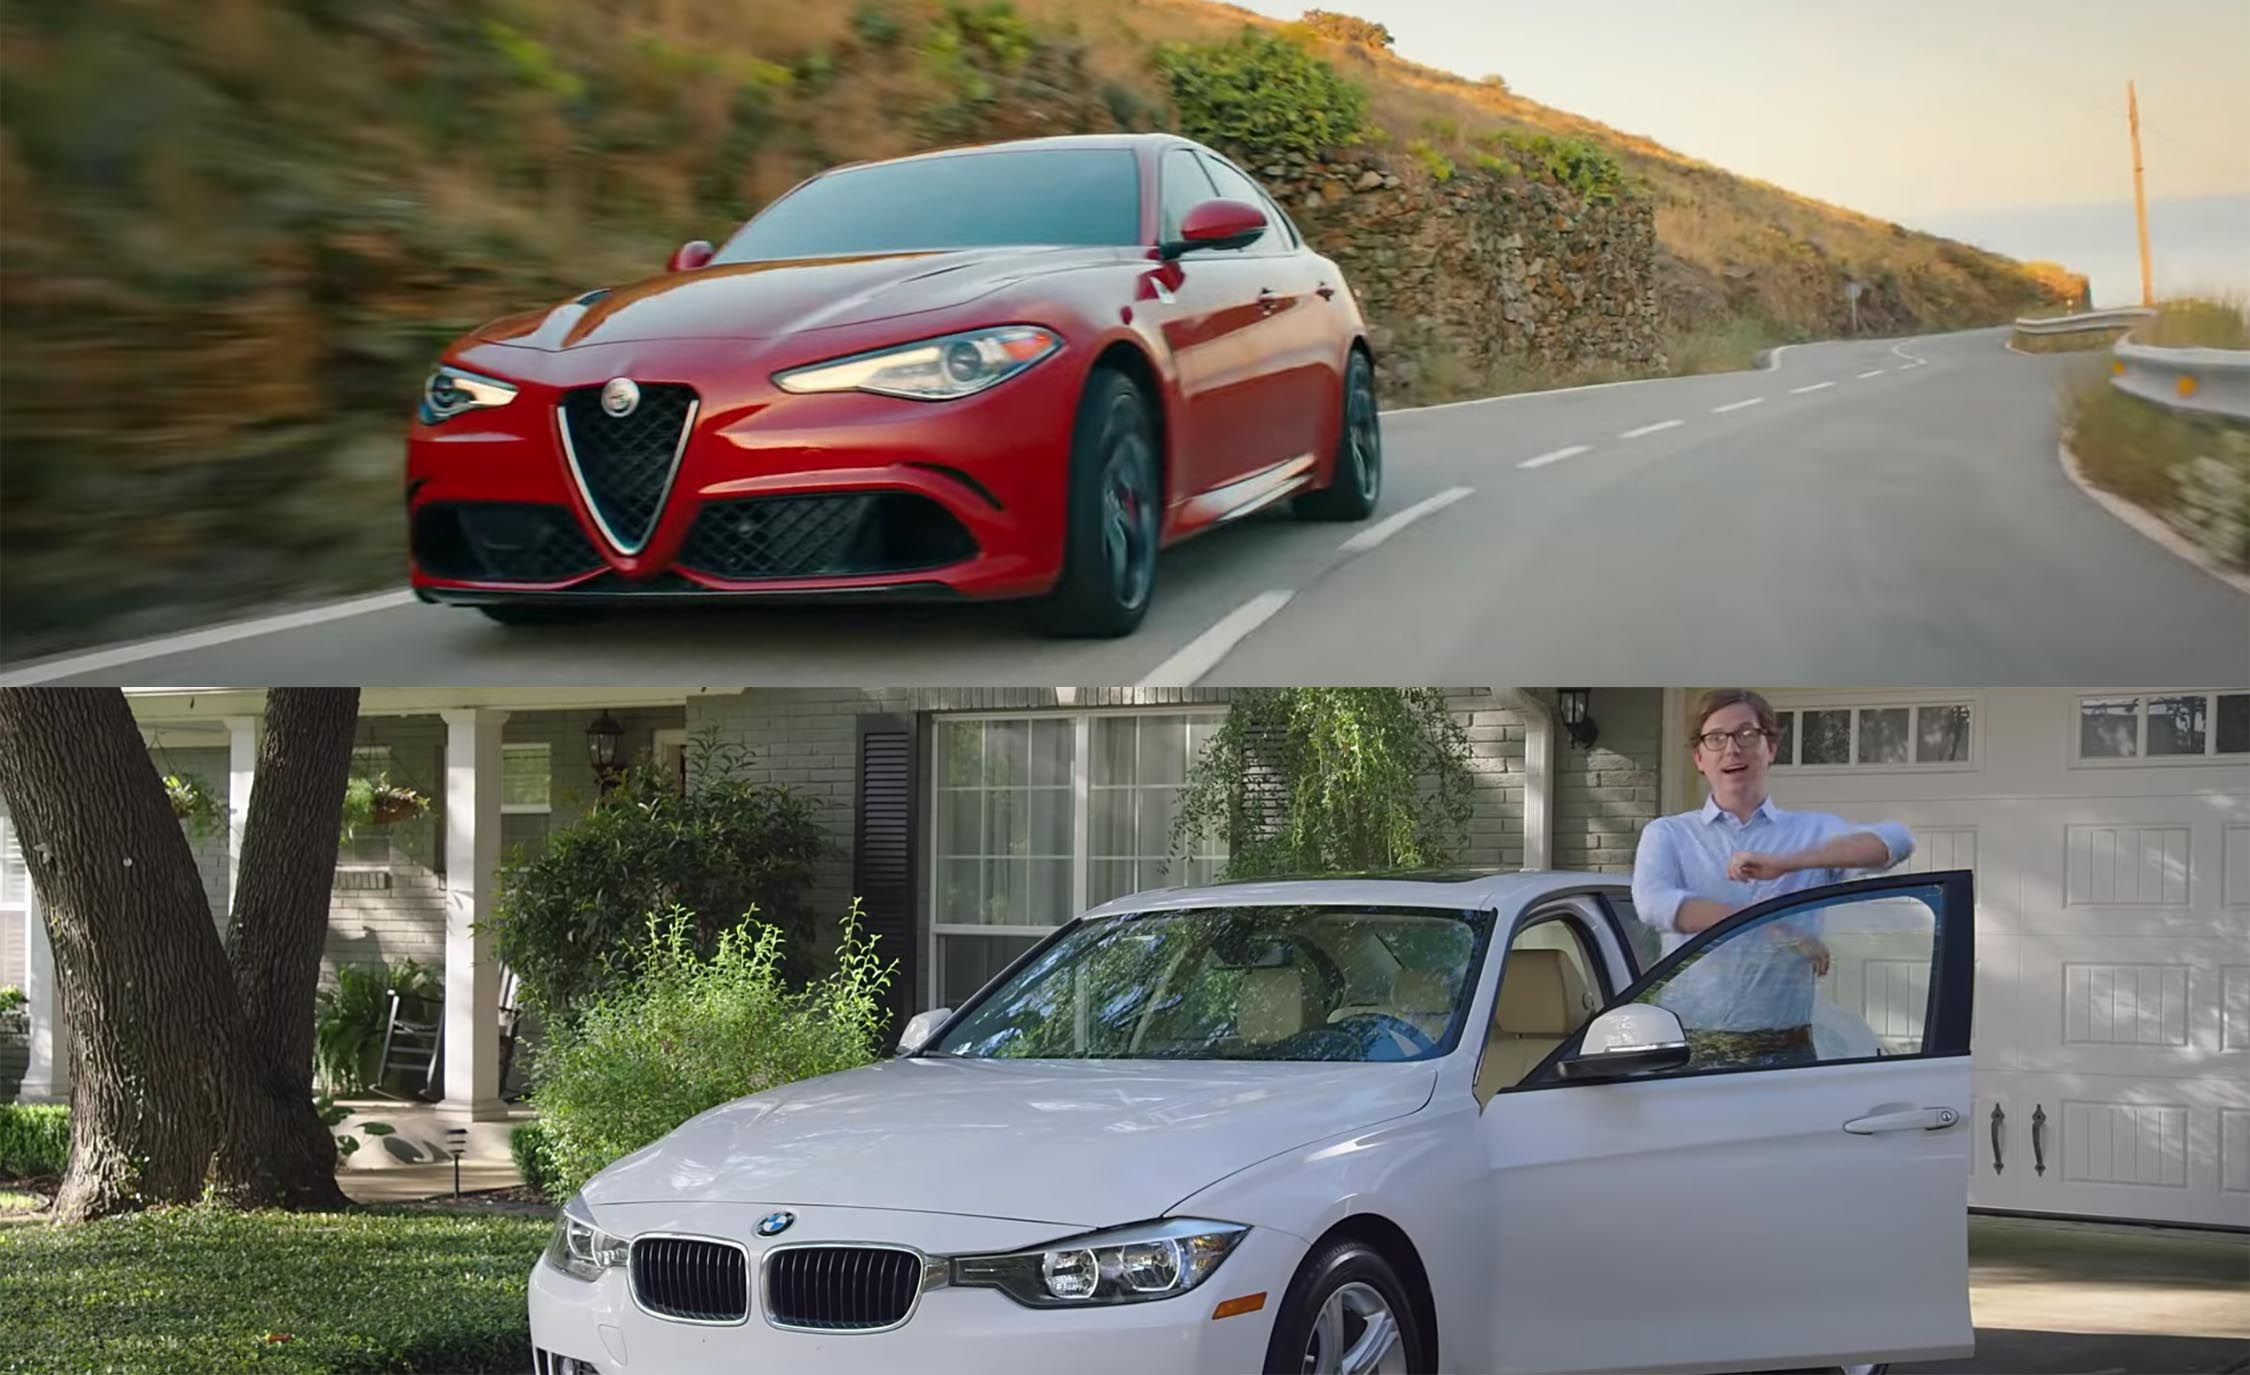 """Doug Sells His BMW"" Is Alfa Romeo's Pitch"